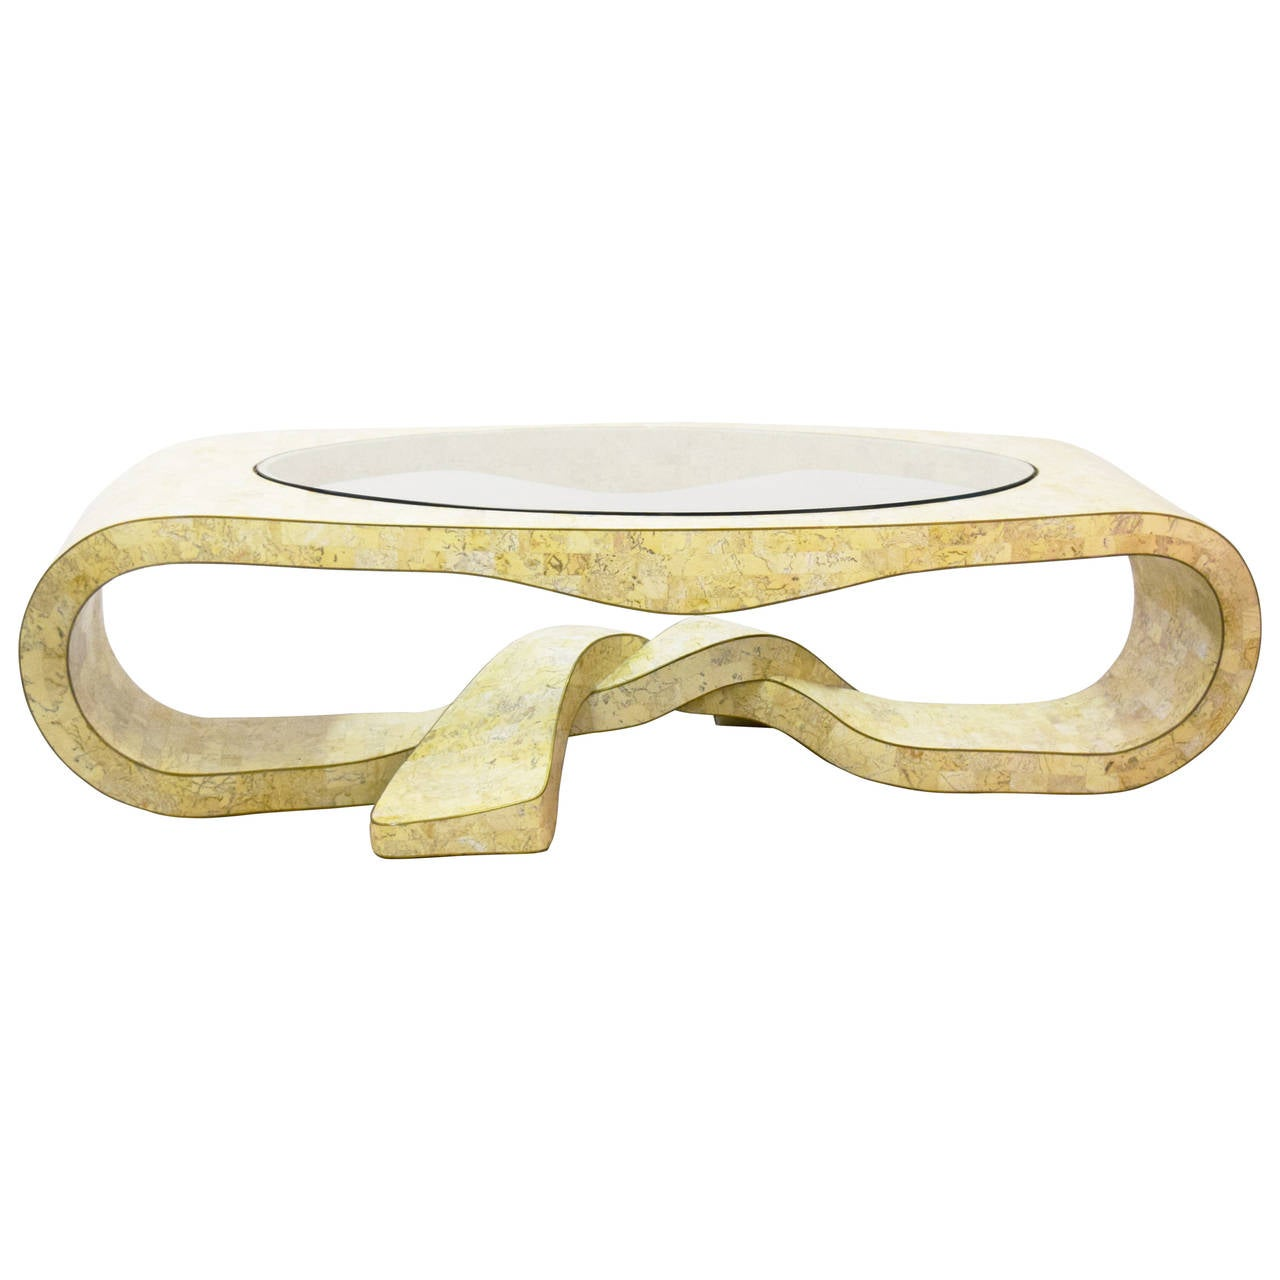 Maitland-Smith Tesselated Stone Sculptural Coffee Table